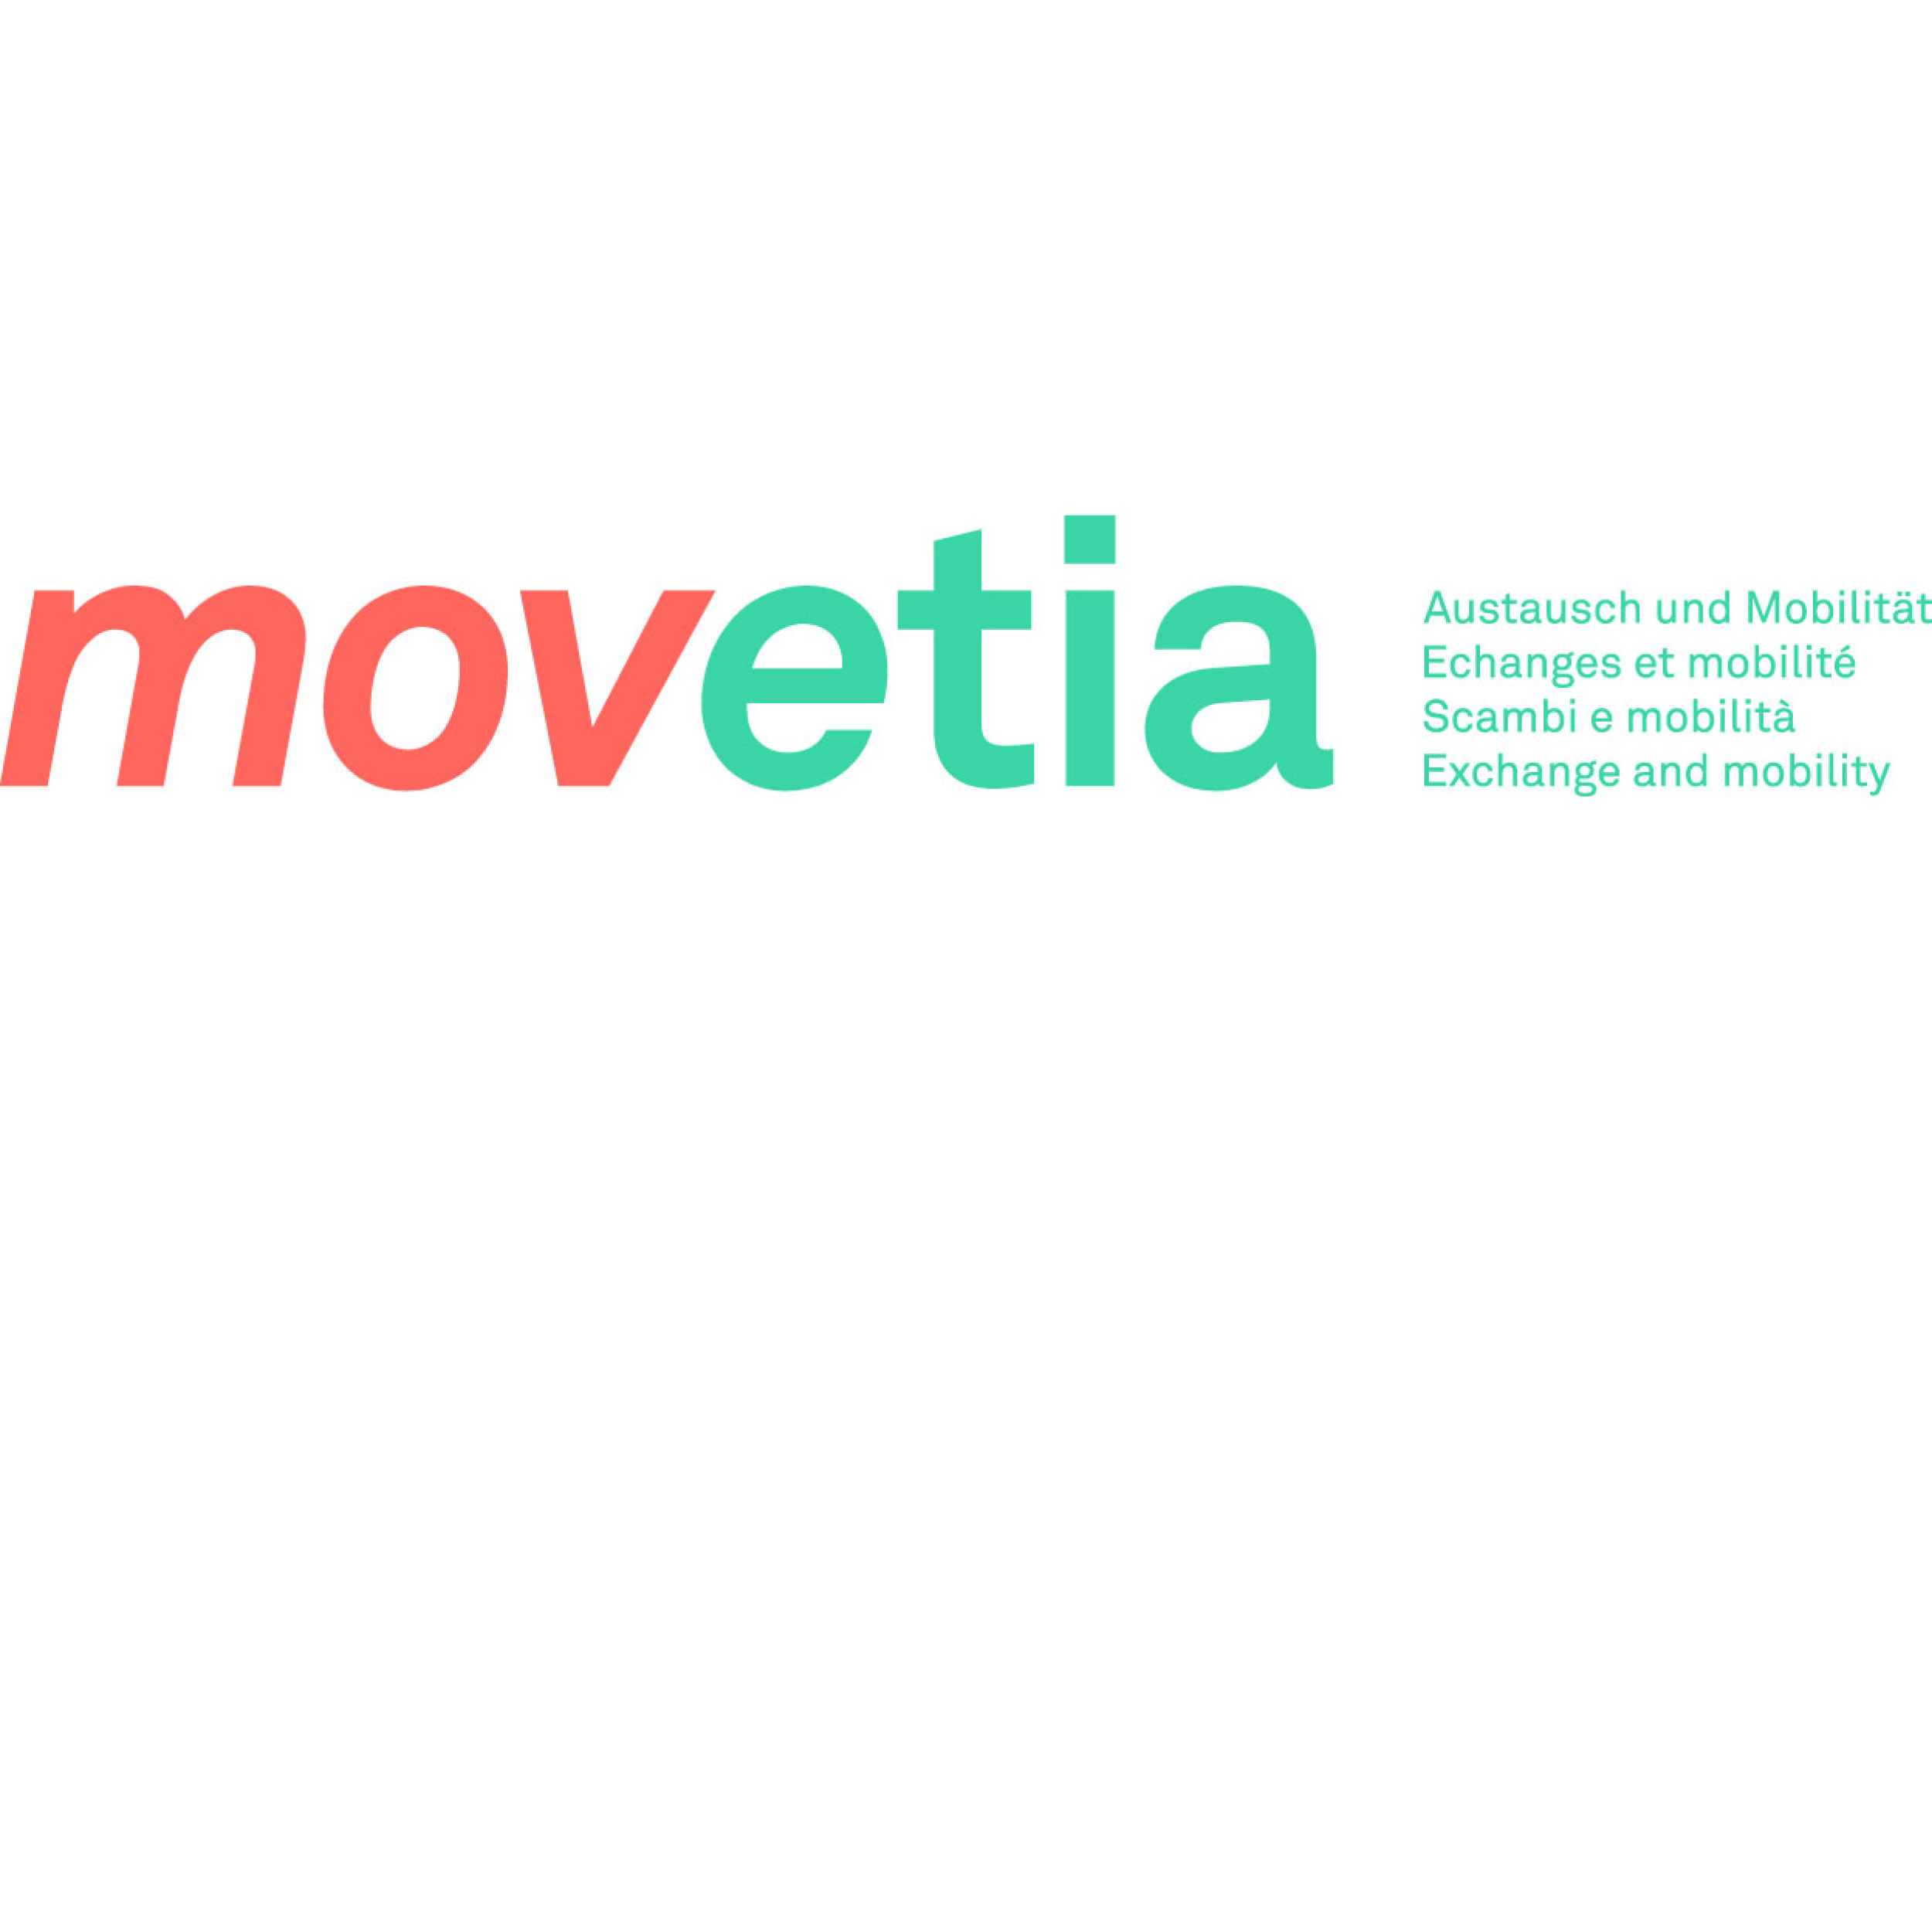 movetia_Logo_square